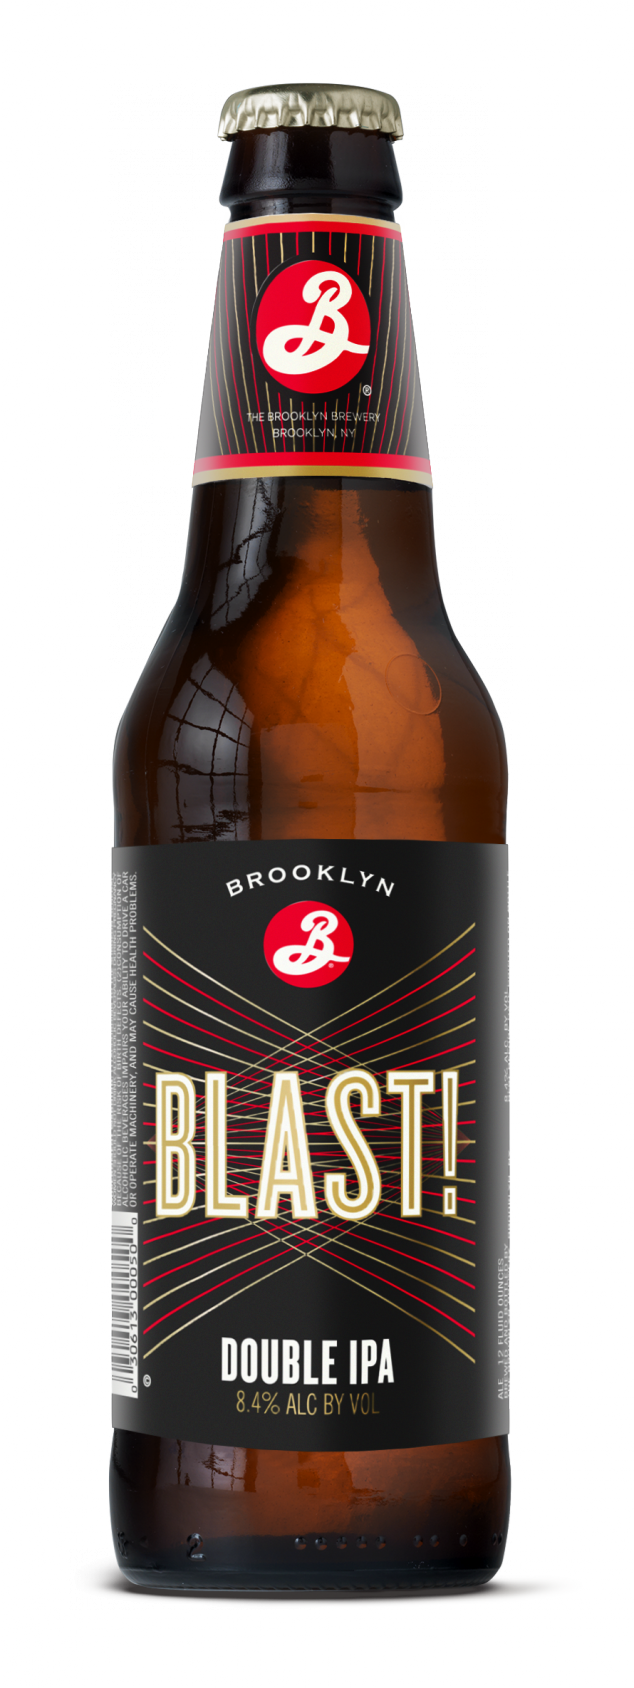 Blast IPA from Brooklyn Brewery